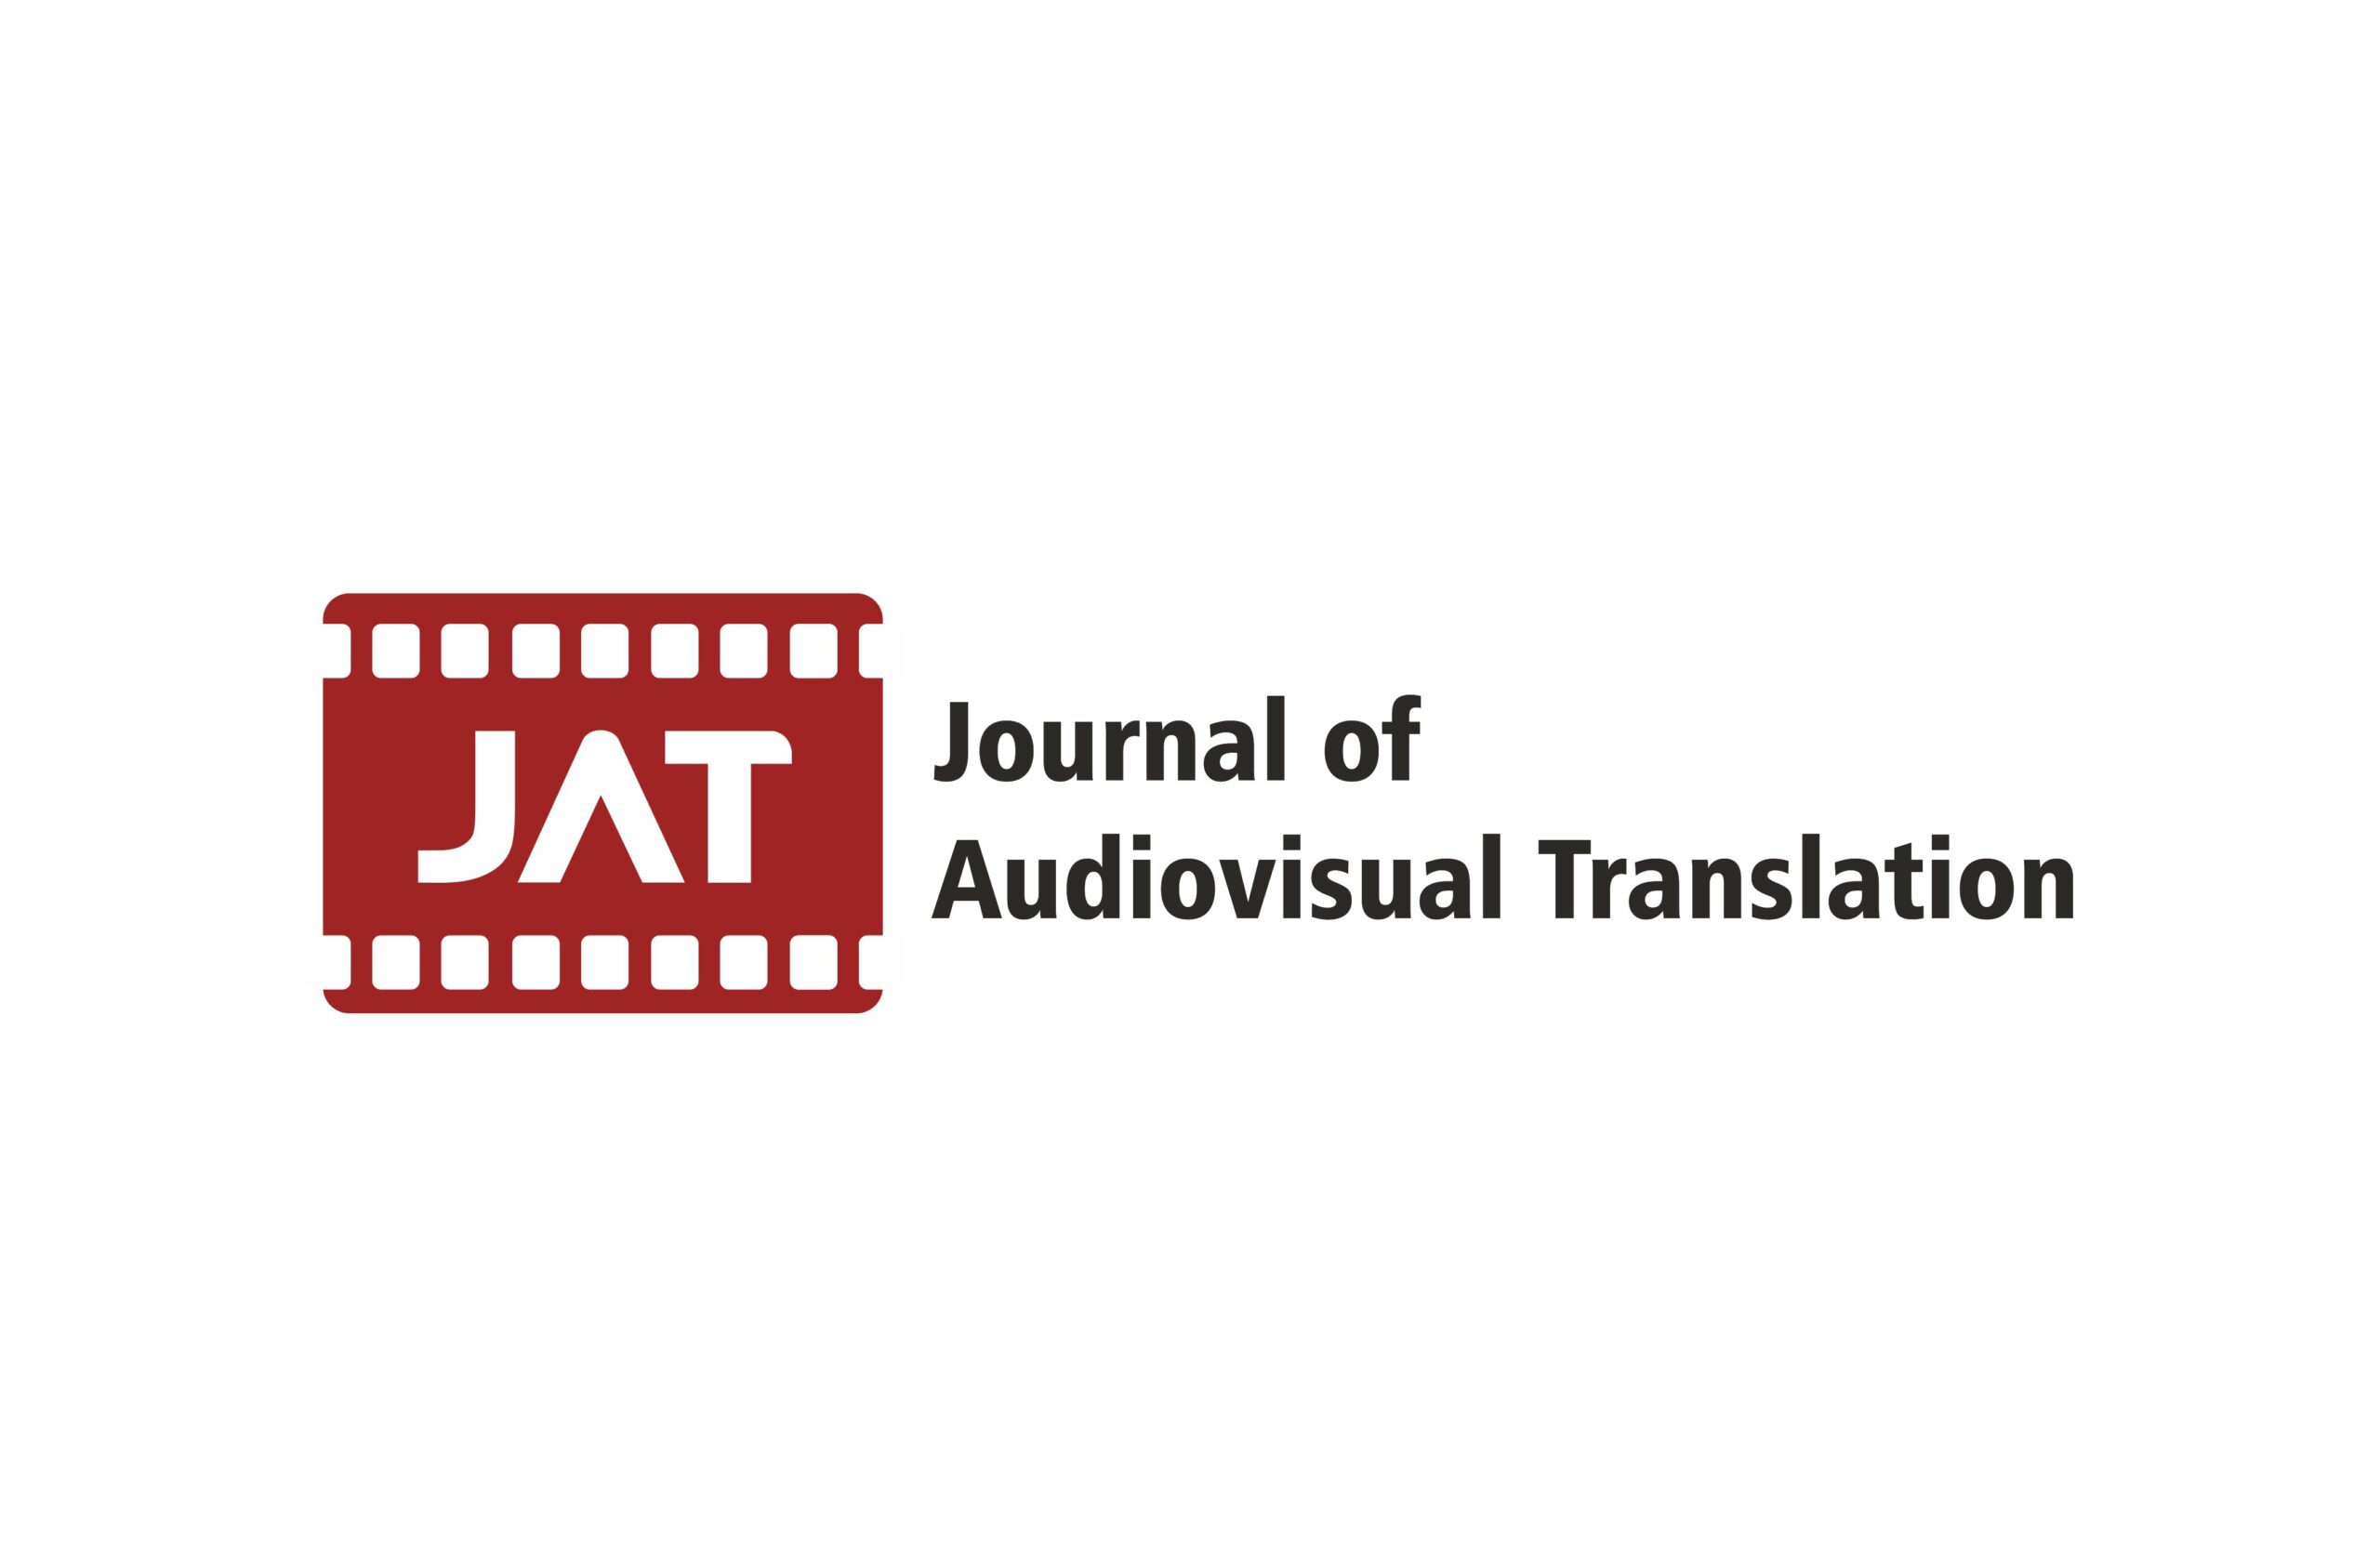 JAT logo with sign